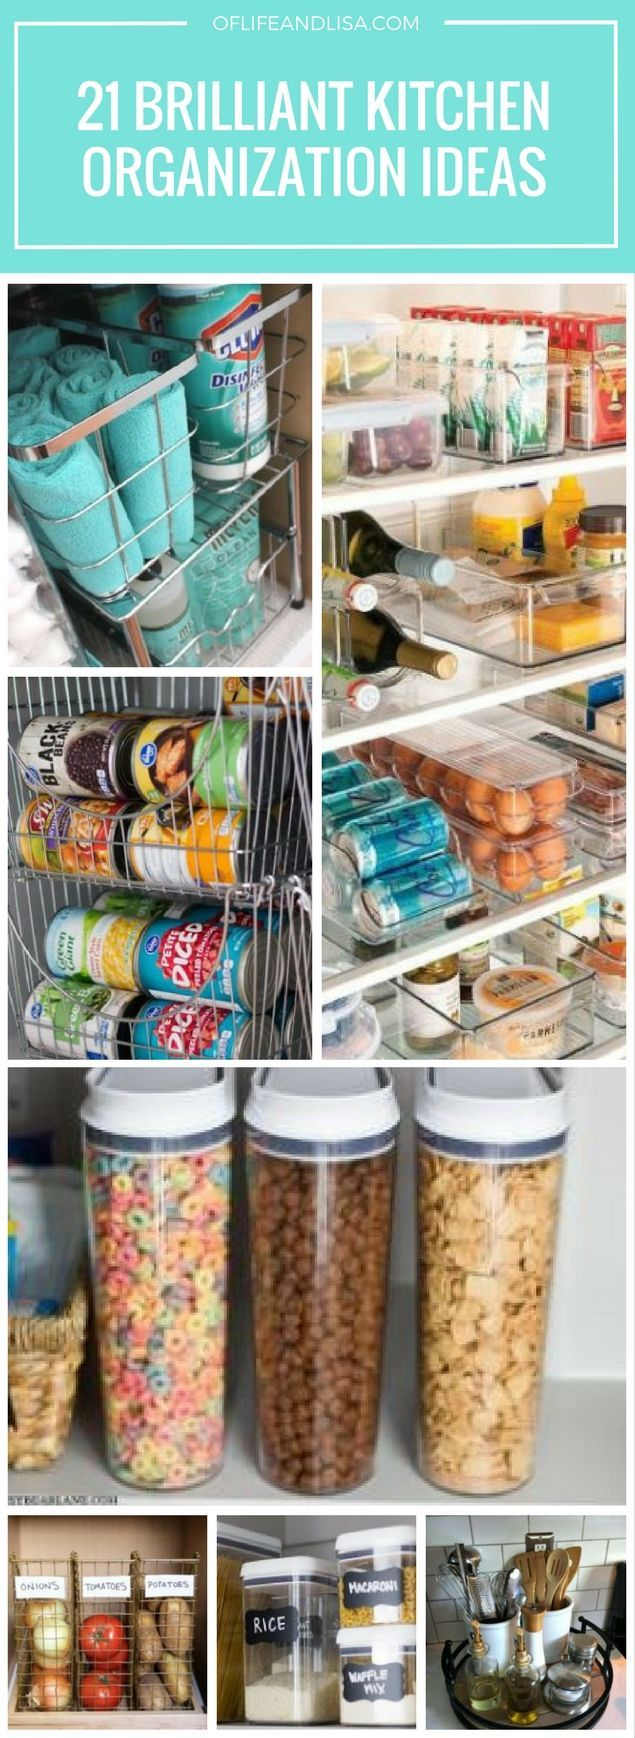 21 Brilliant DIY Kitchen Organization Ideas 320